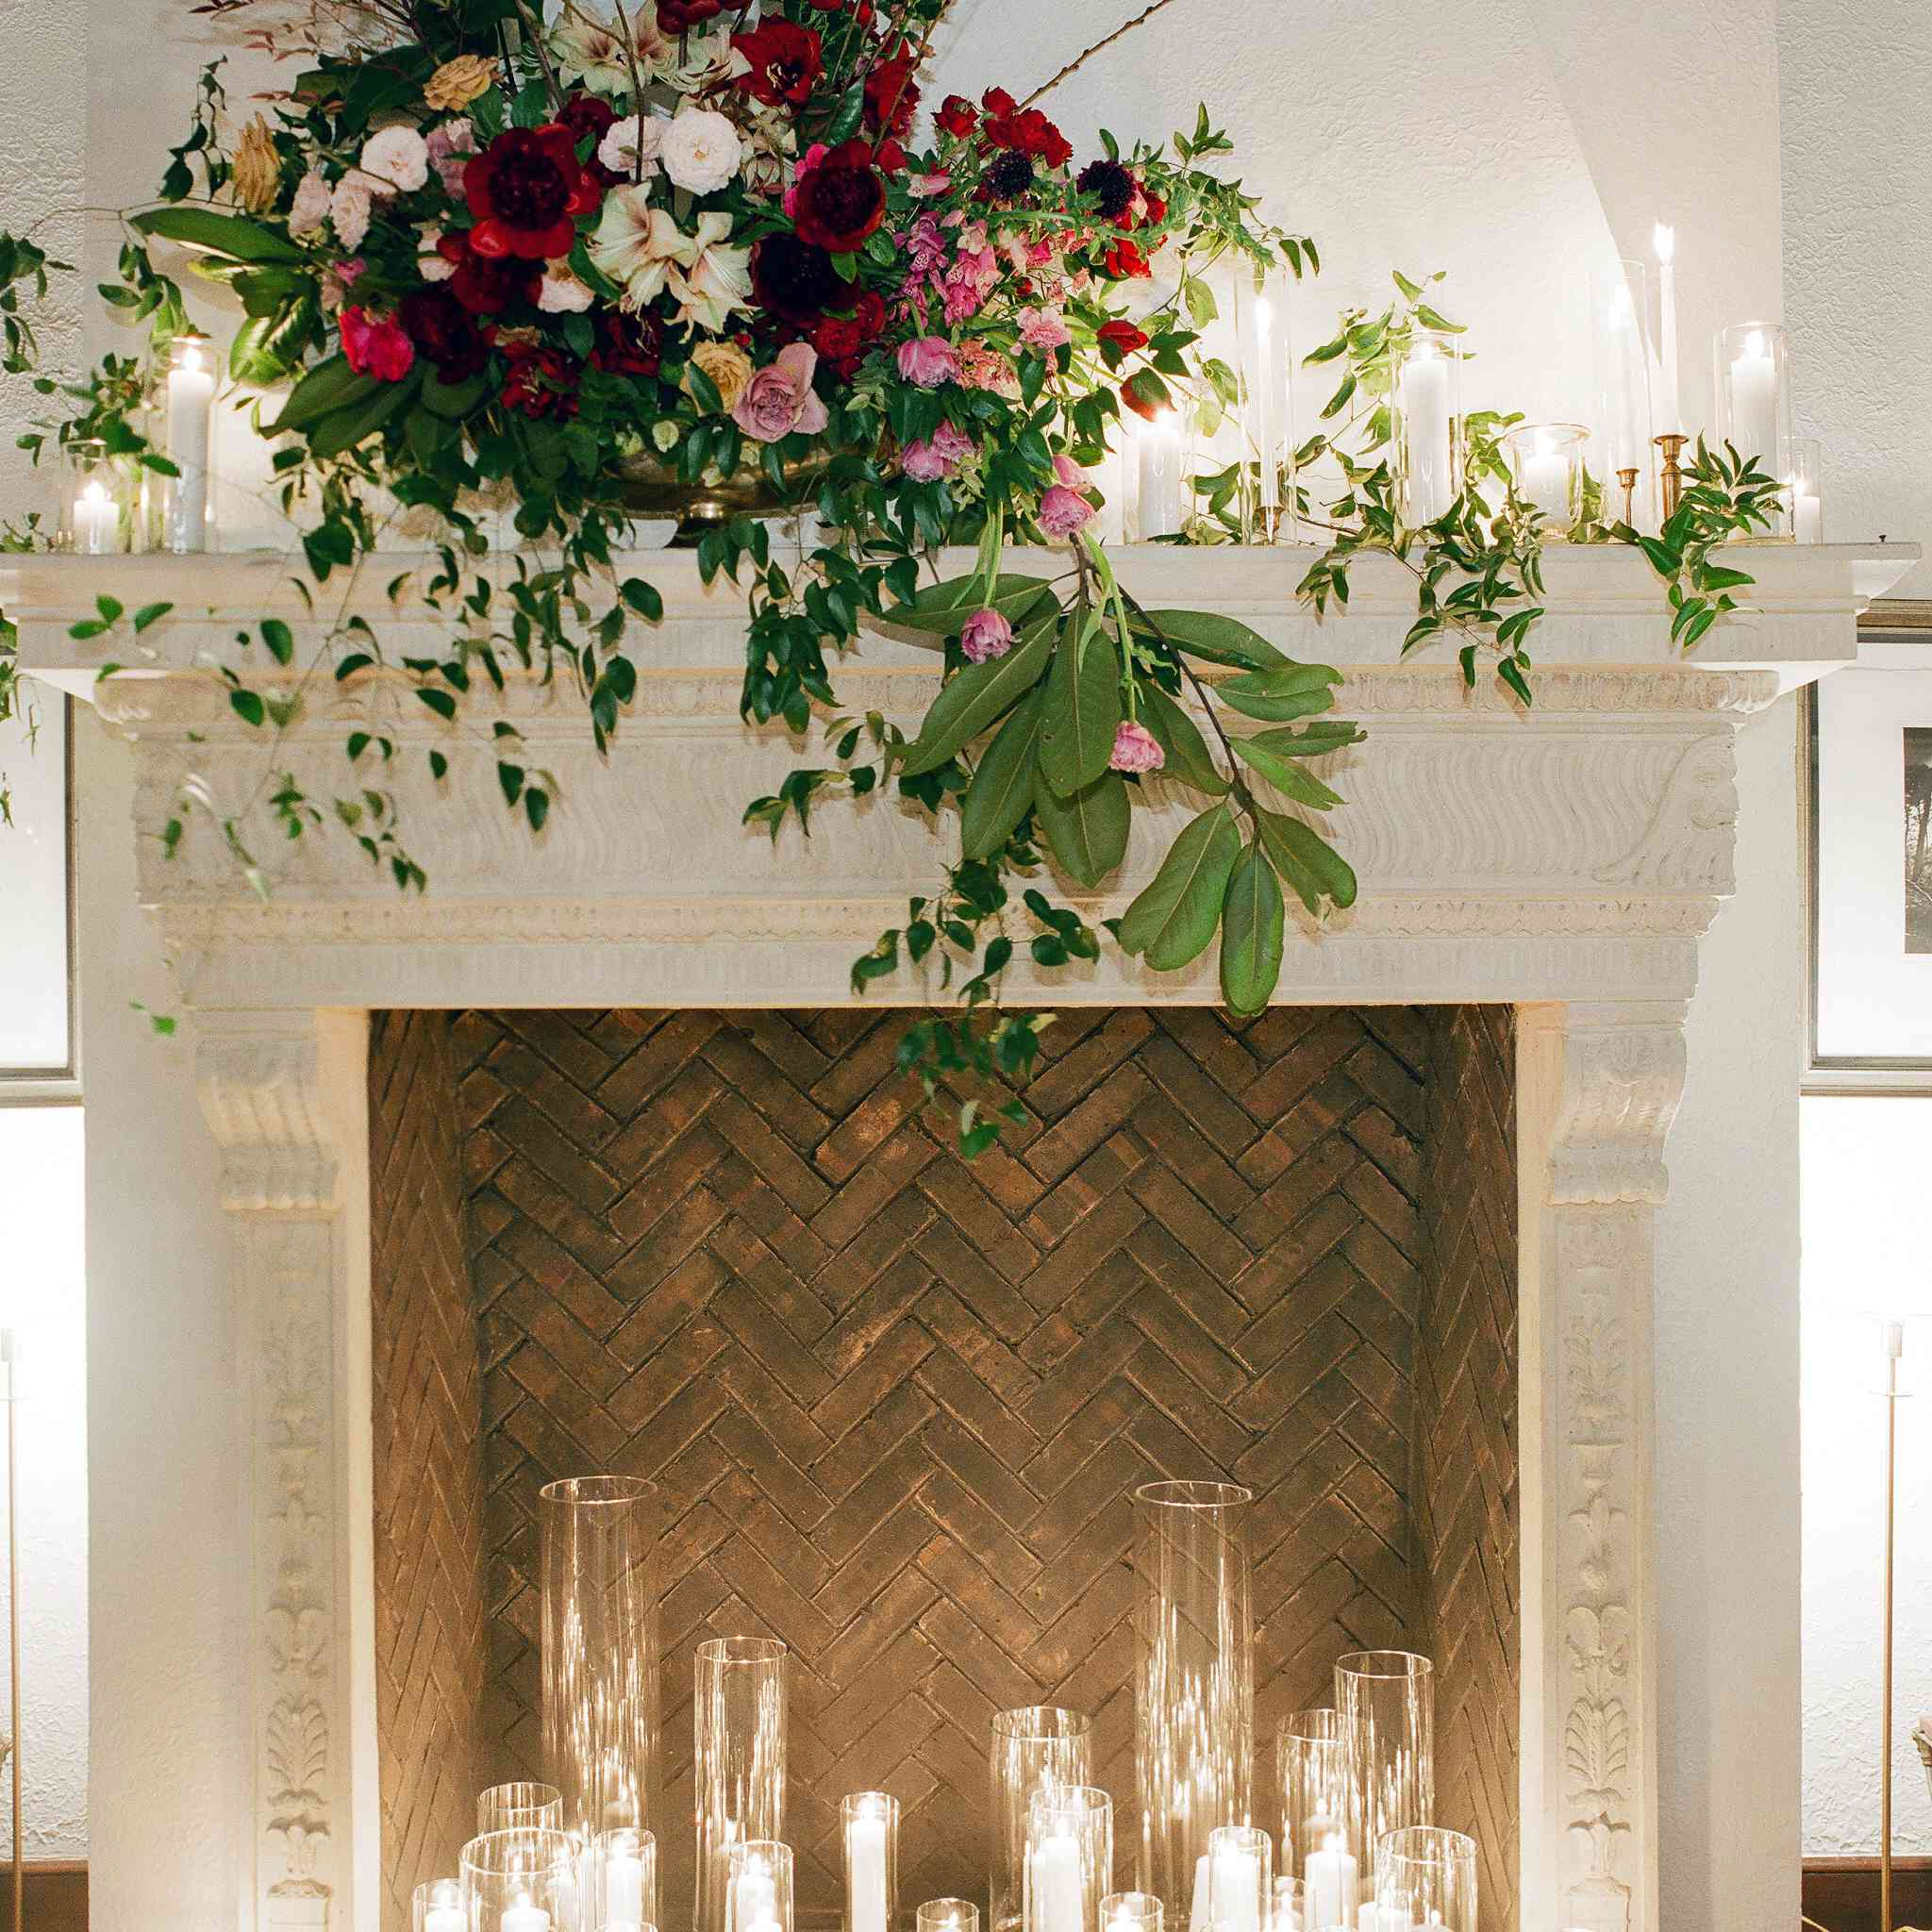 Fireplace with candles and flowers